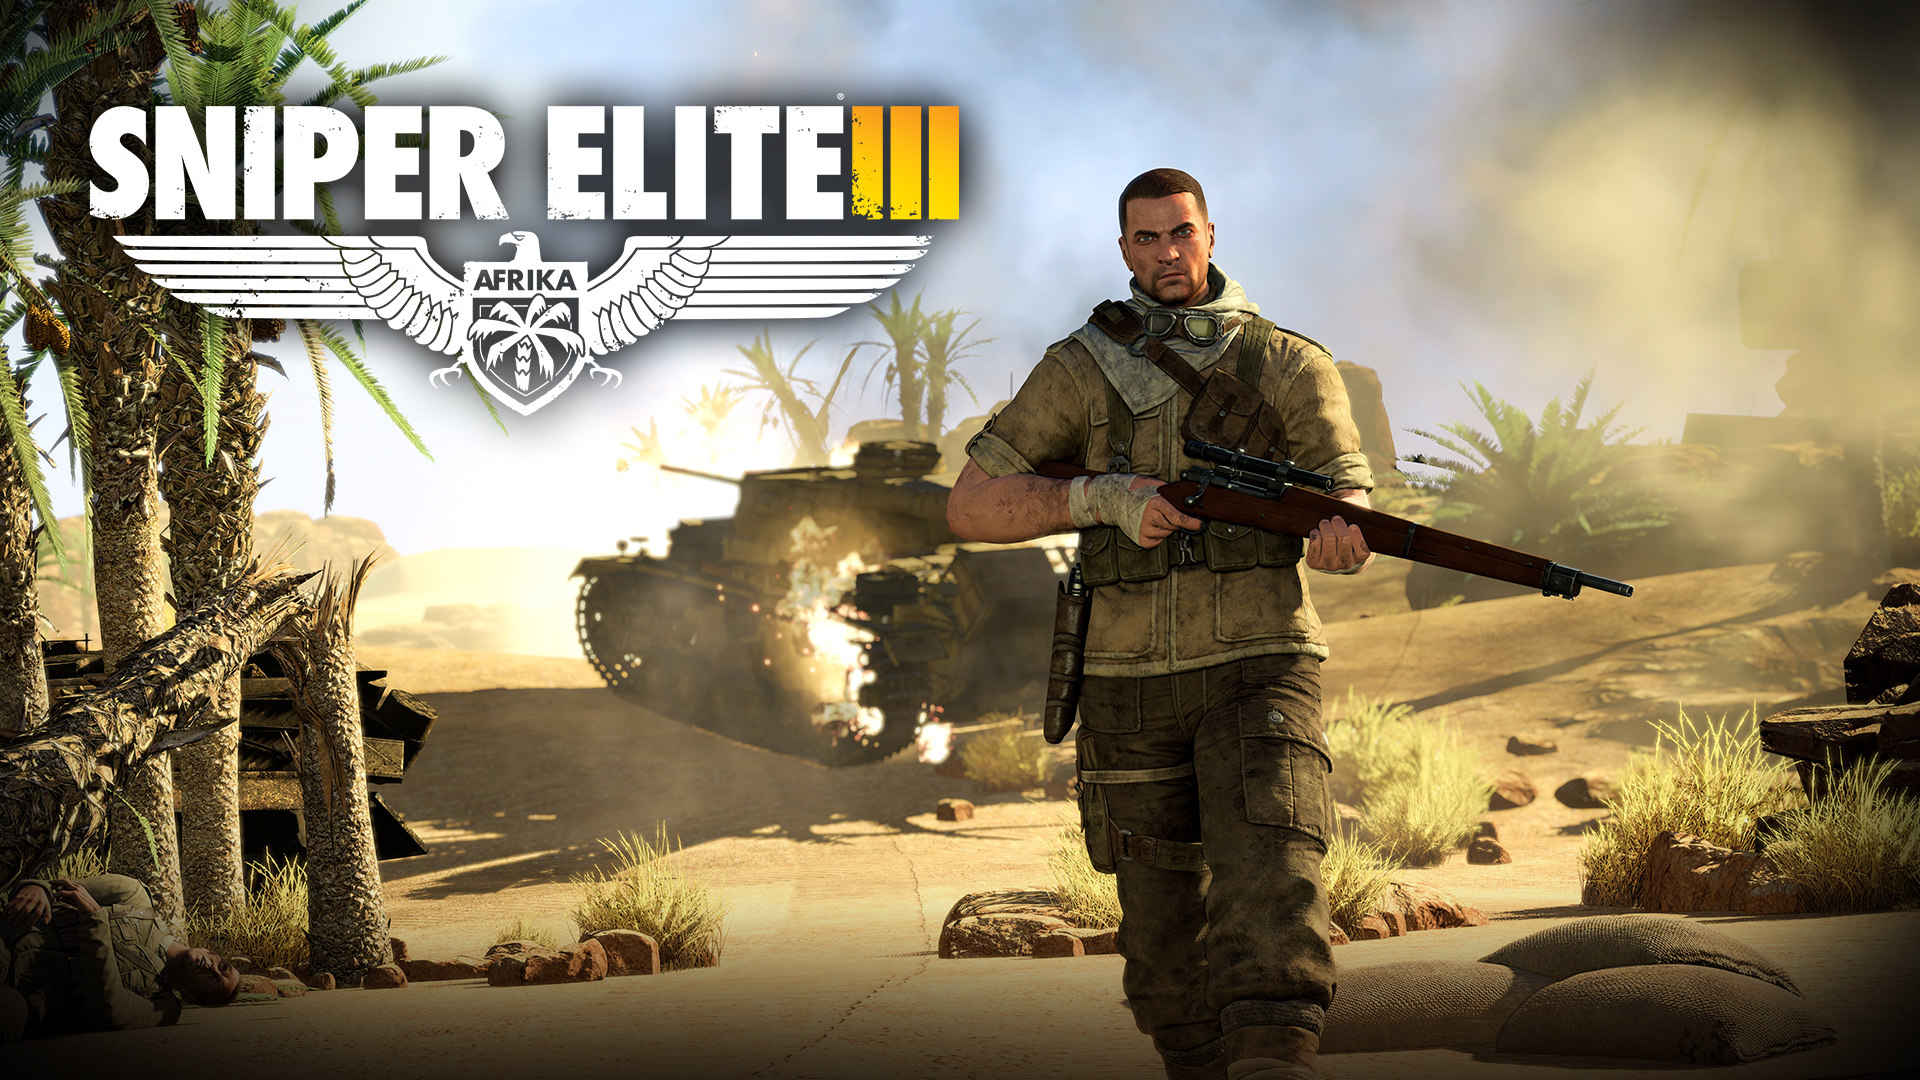 """Download the following Sniper Elite 3 Wallpaper 2713 by clicking the button positioned underneath the """"Download Wallpaper"""" section."""